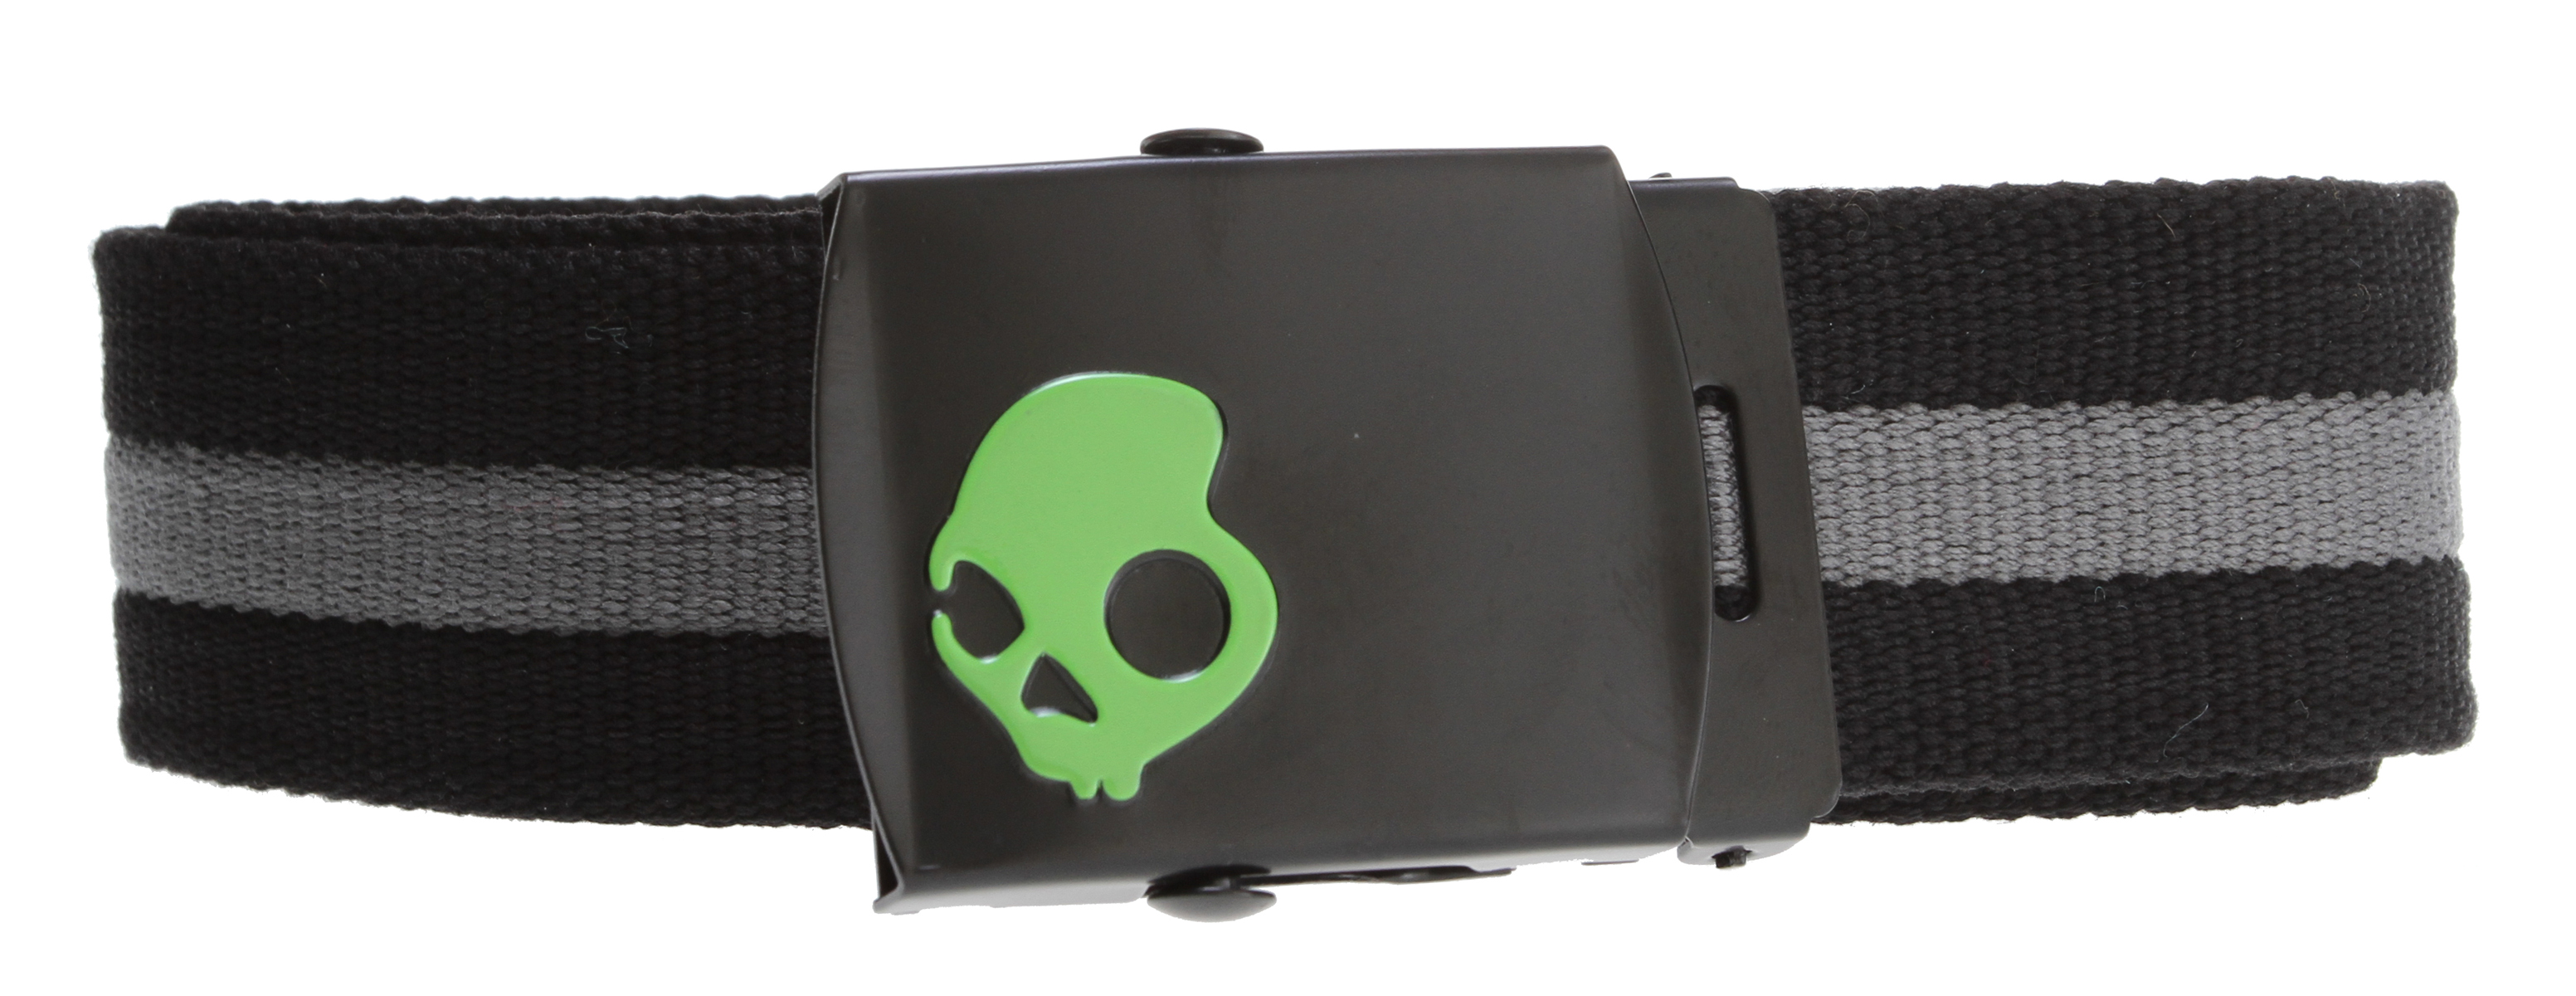 Key Features of the Skullcandy Habitat Web Belt: Engineered polyester web belt Custom removable buckle - $14.99